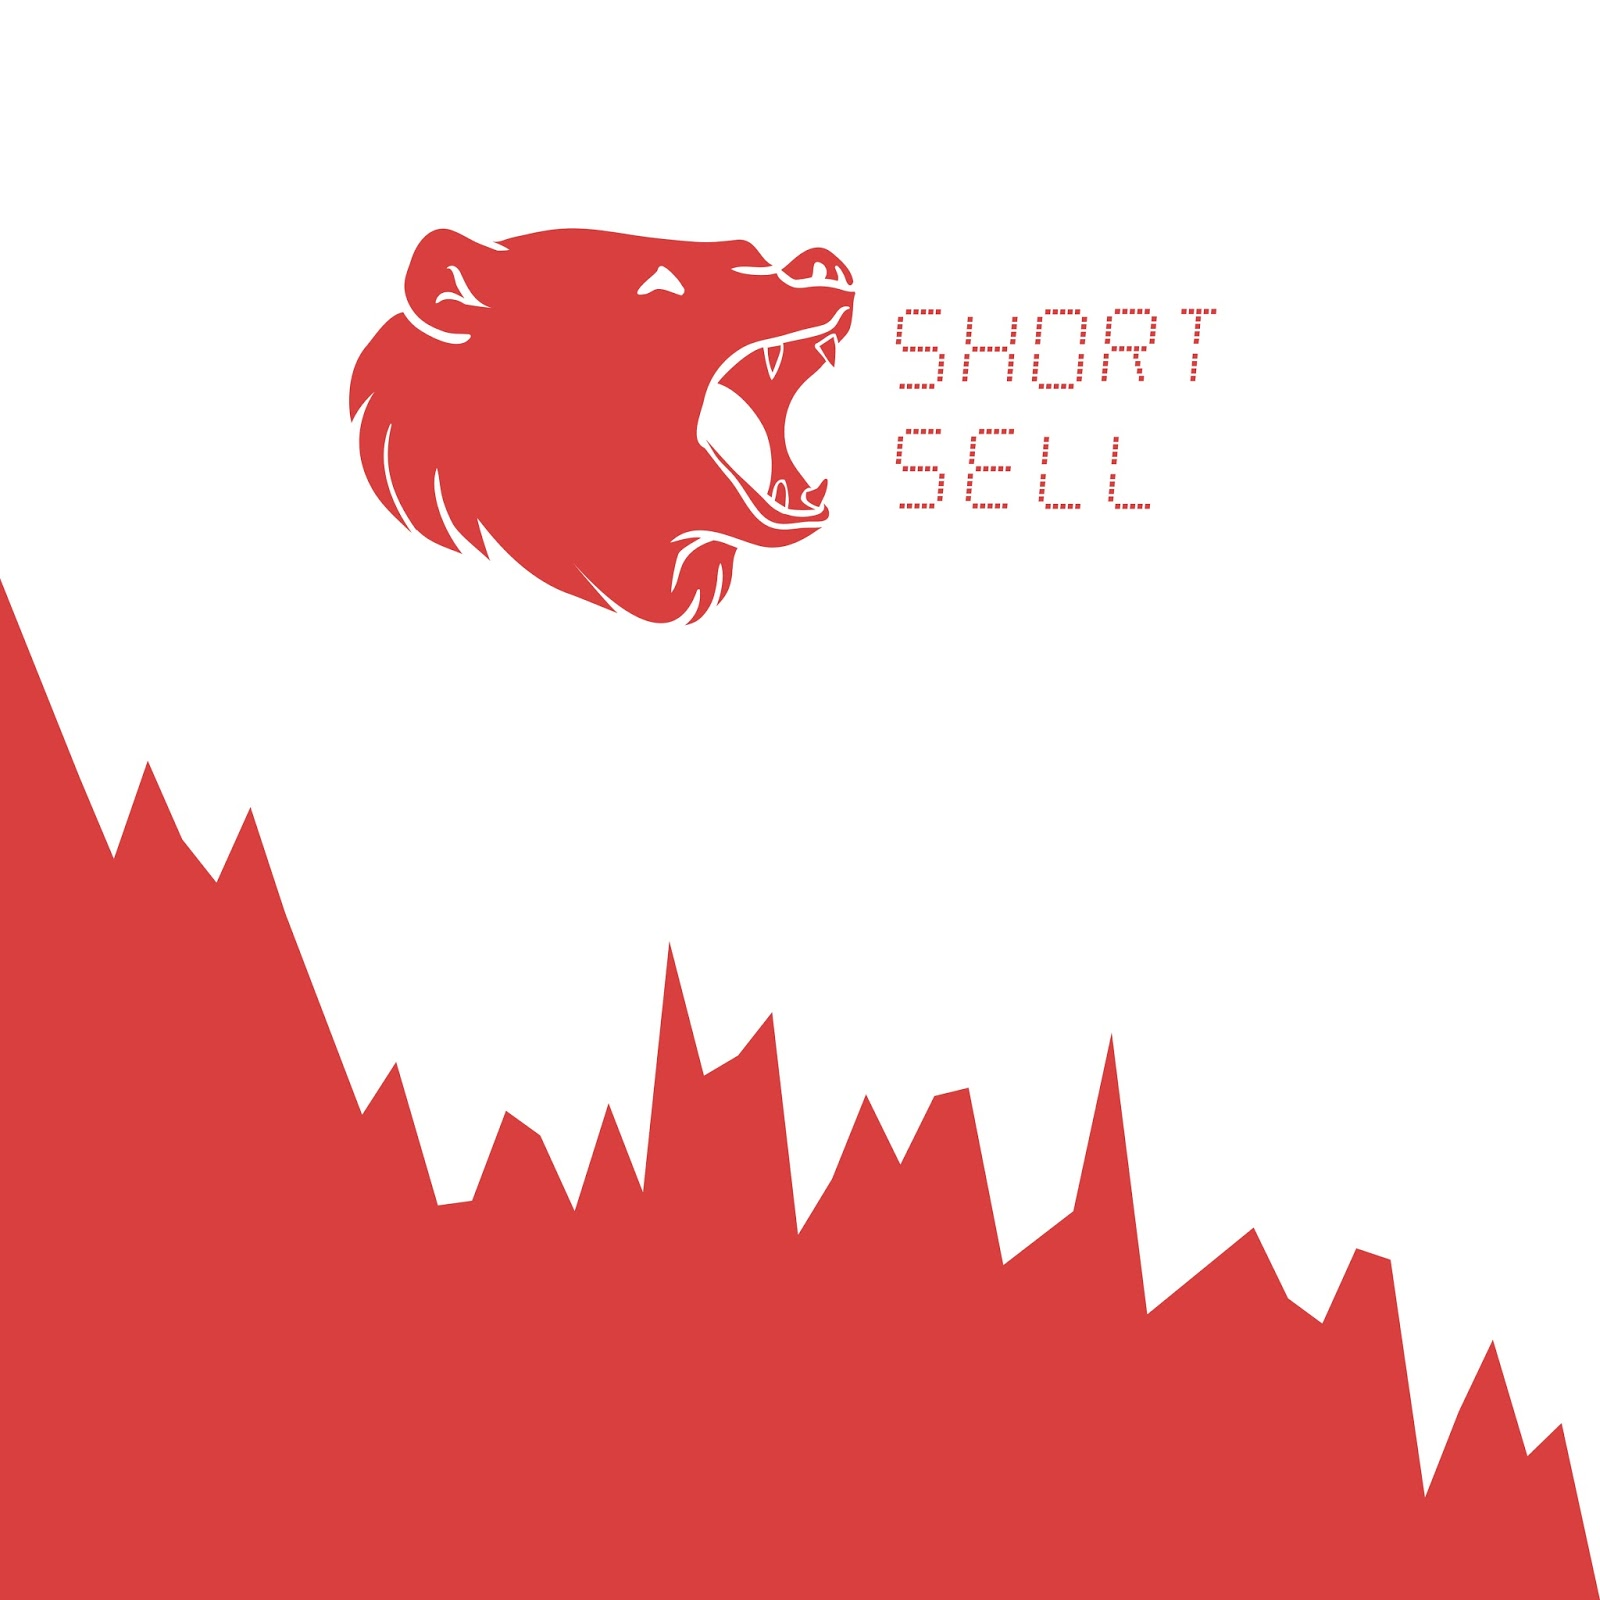 Bearish Trend with the words short sell